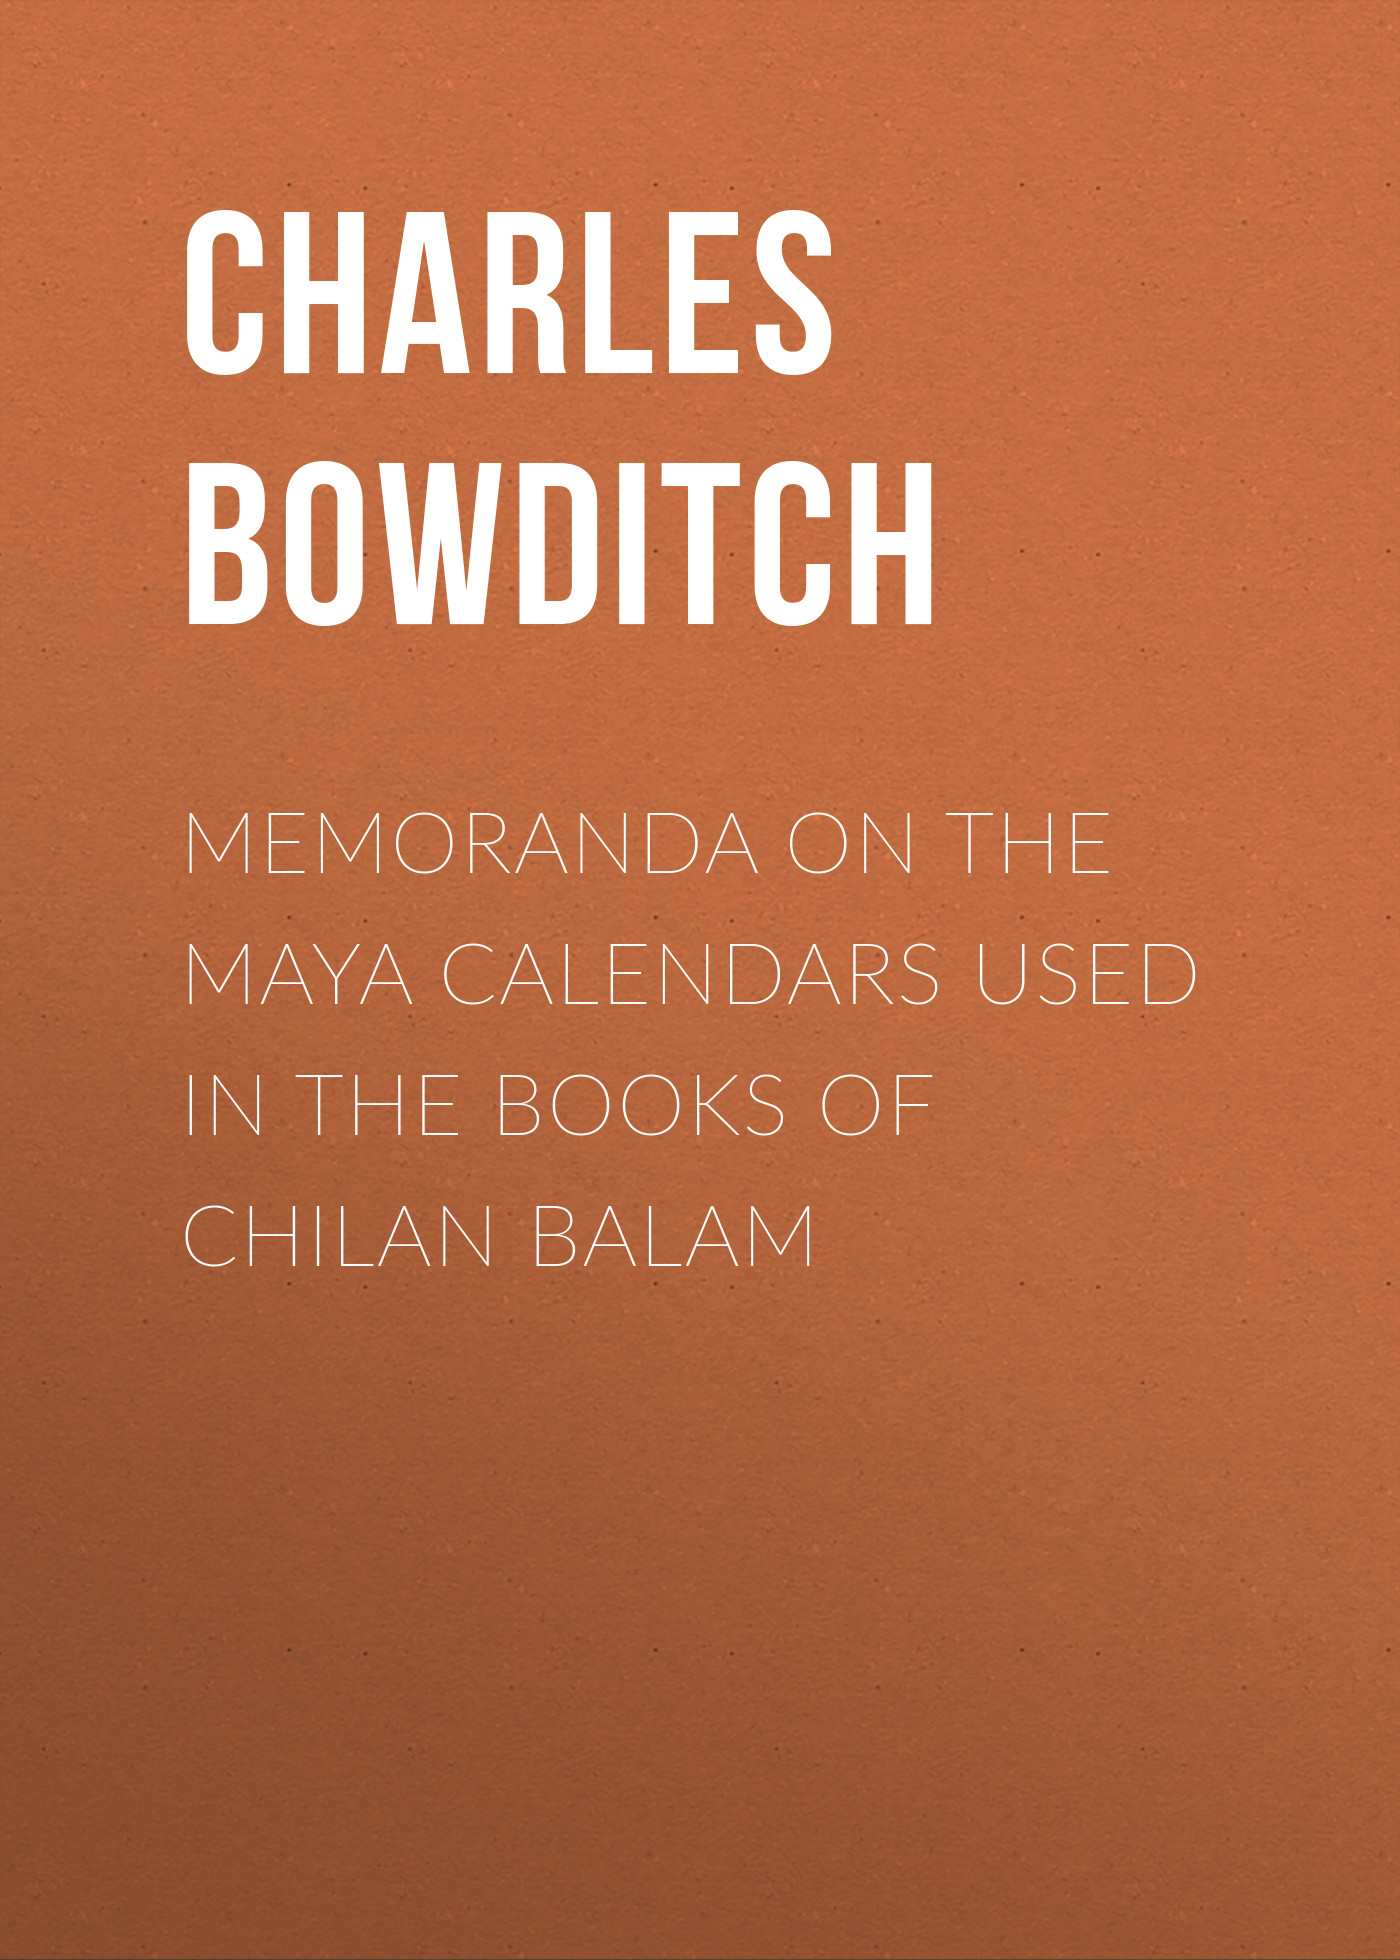 Bowditch Charles Pickering Memoranda on the Maya Calendars Used in the Books of Chilan Balam be1443 sensor used in good condition